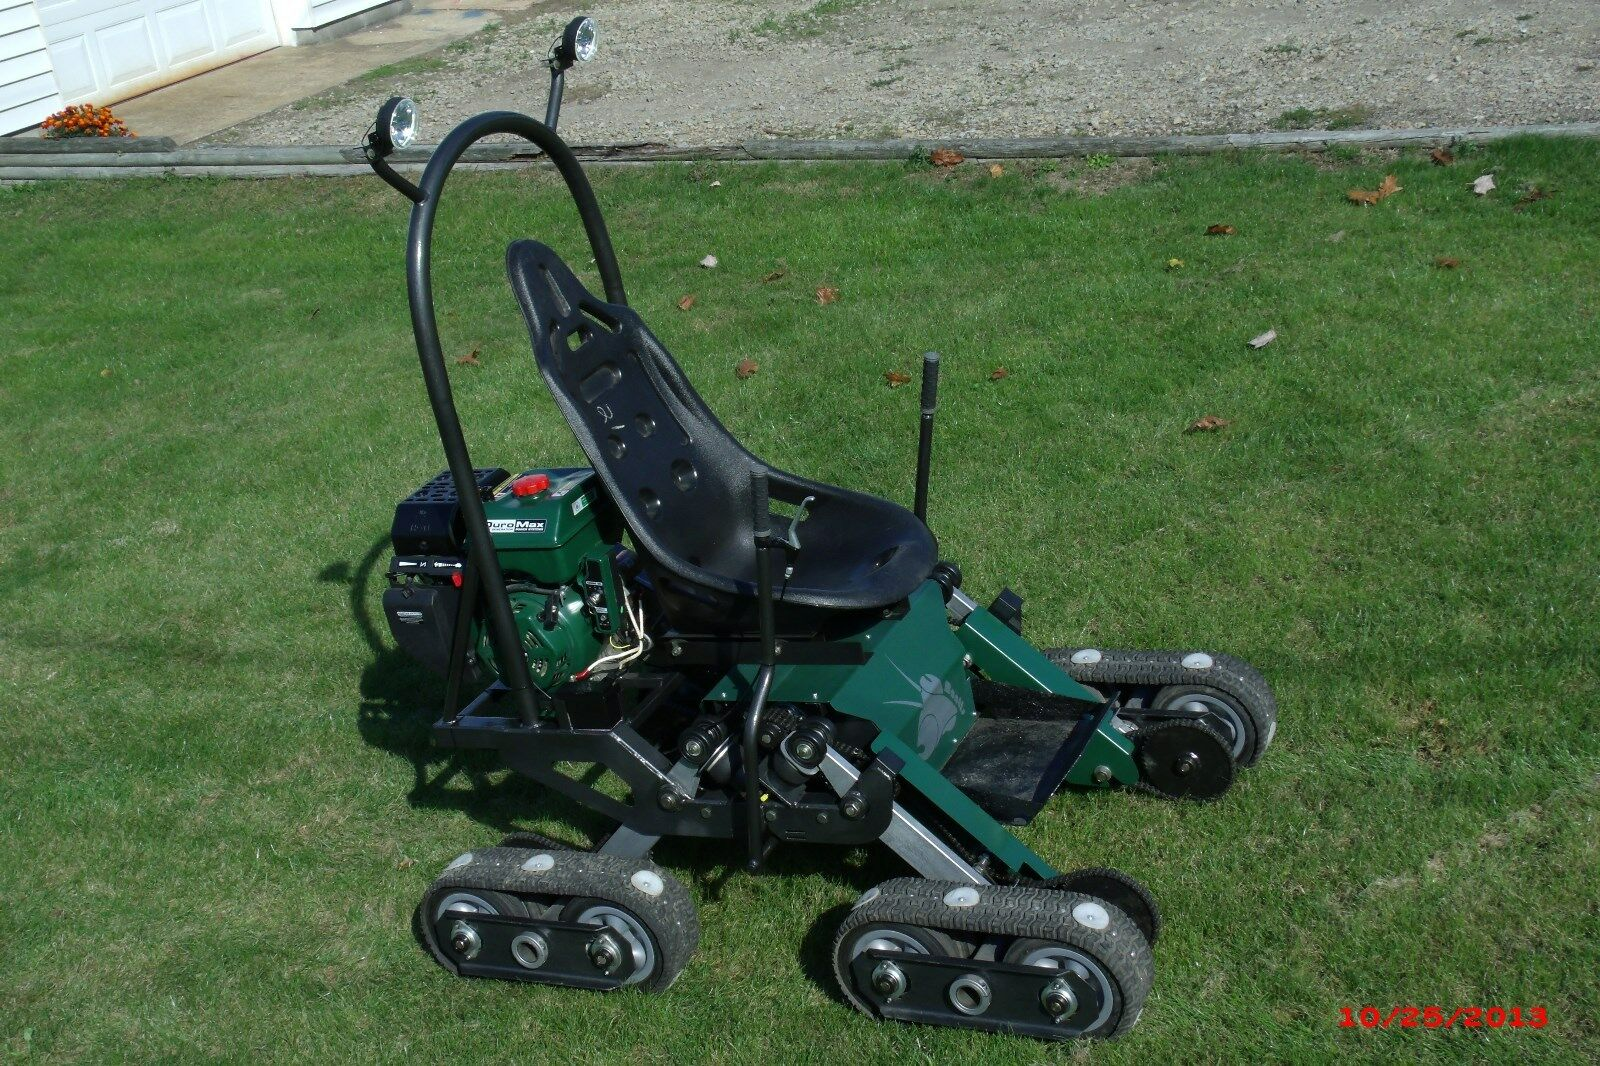 Americas Tanga brazil 3162details additionally Drift Trike Industrial And Mantis TWIN PACK Build 201350783534 in addition P464473 11997486 as well Credit Suisse Switzerland in addition Suisse Montagnes Vaches Prairie. on switzerland home designs